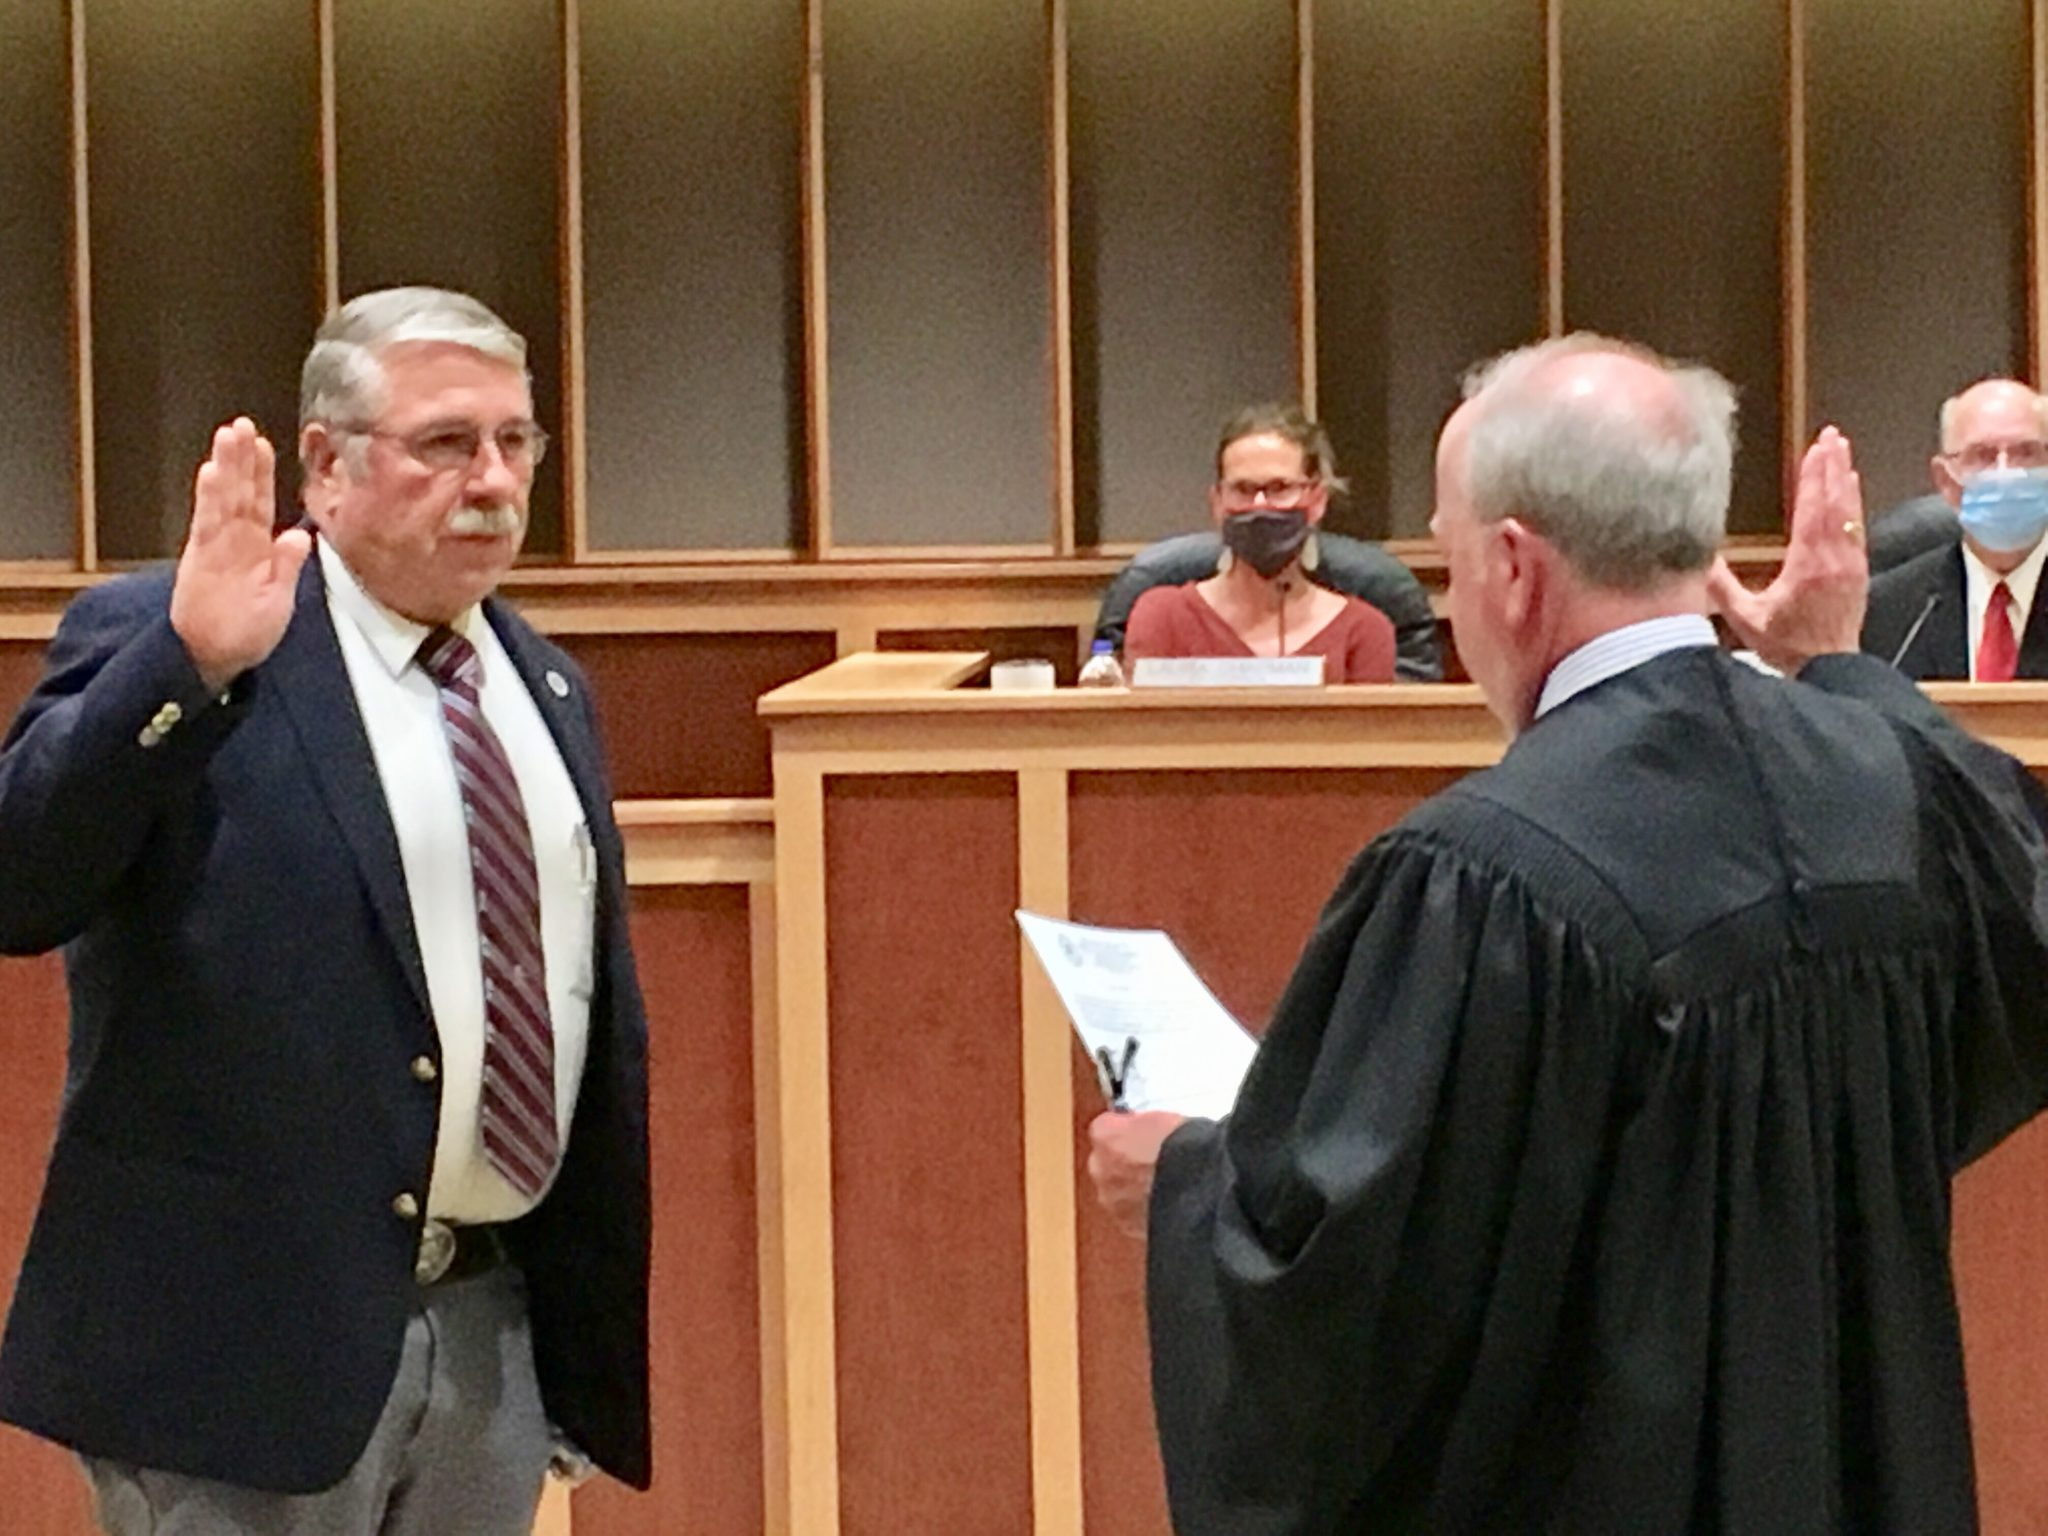 Gregory Schreurs is sworn in by Municipal Court Judge Jeremy Michaels at Tuesday's Gillette City Council meeting.